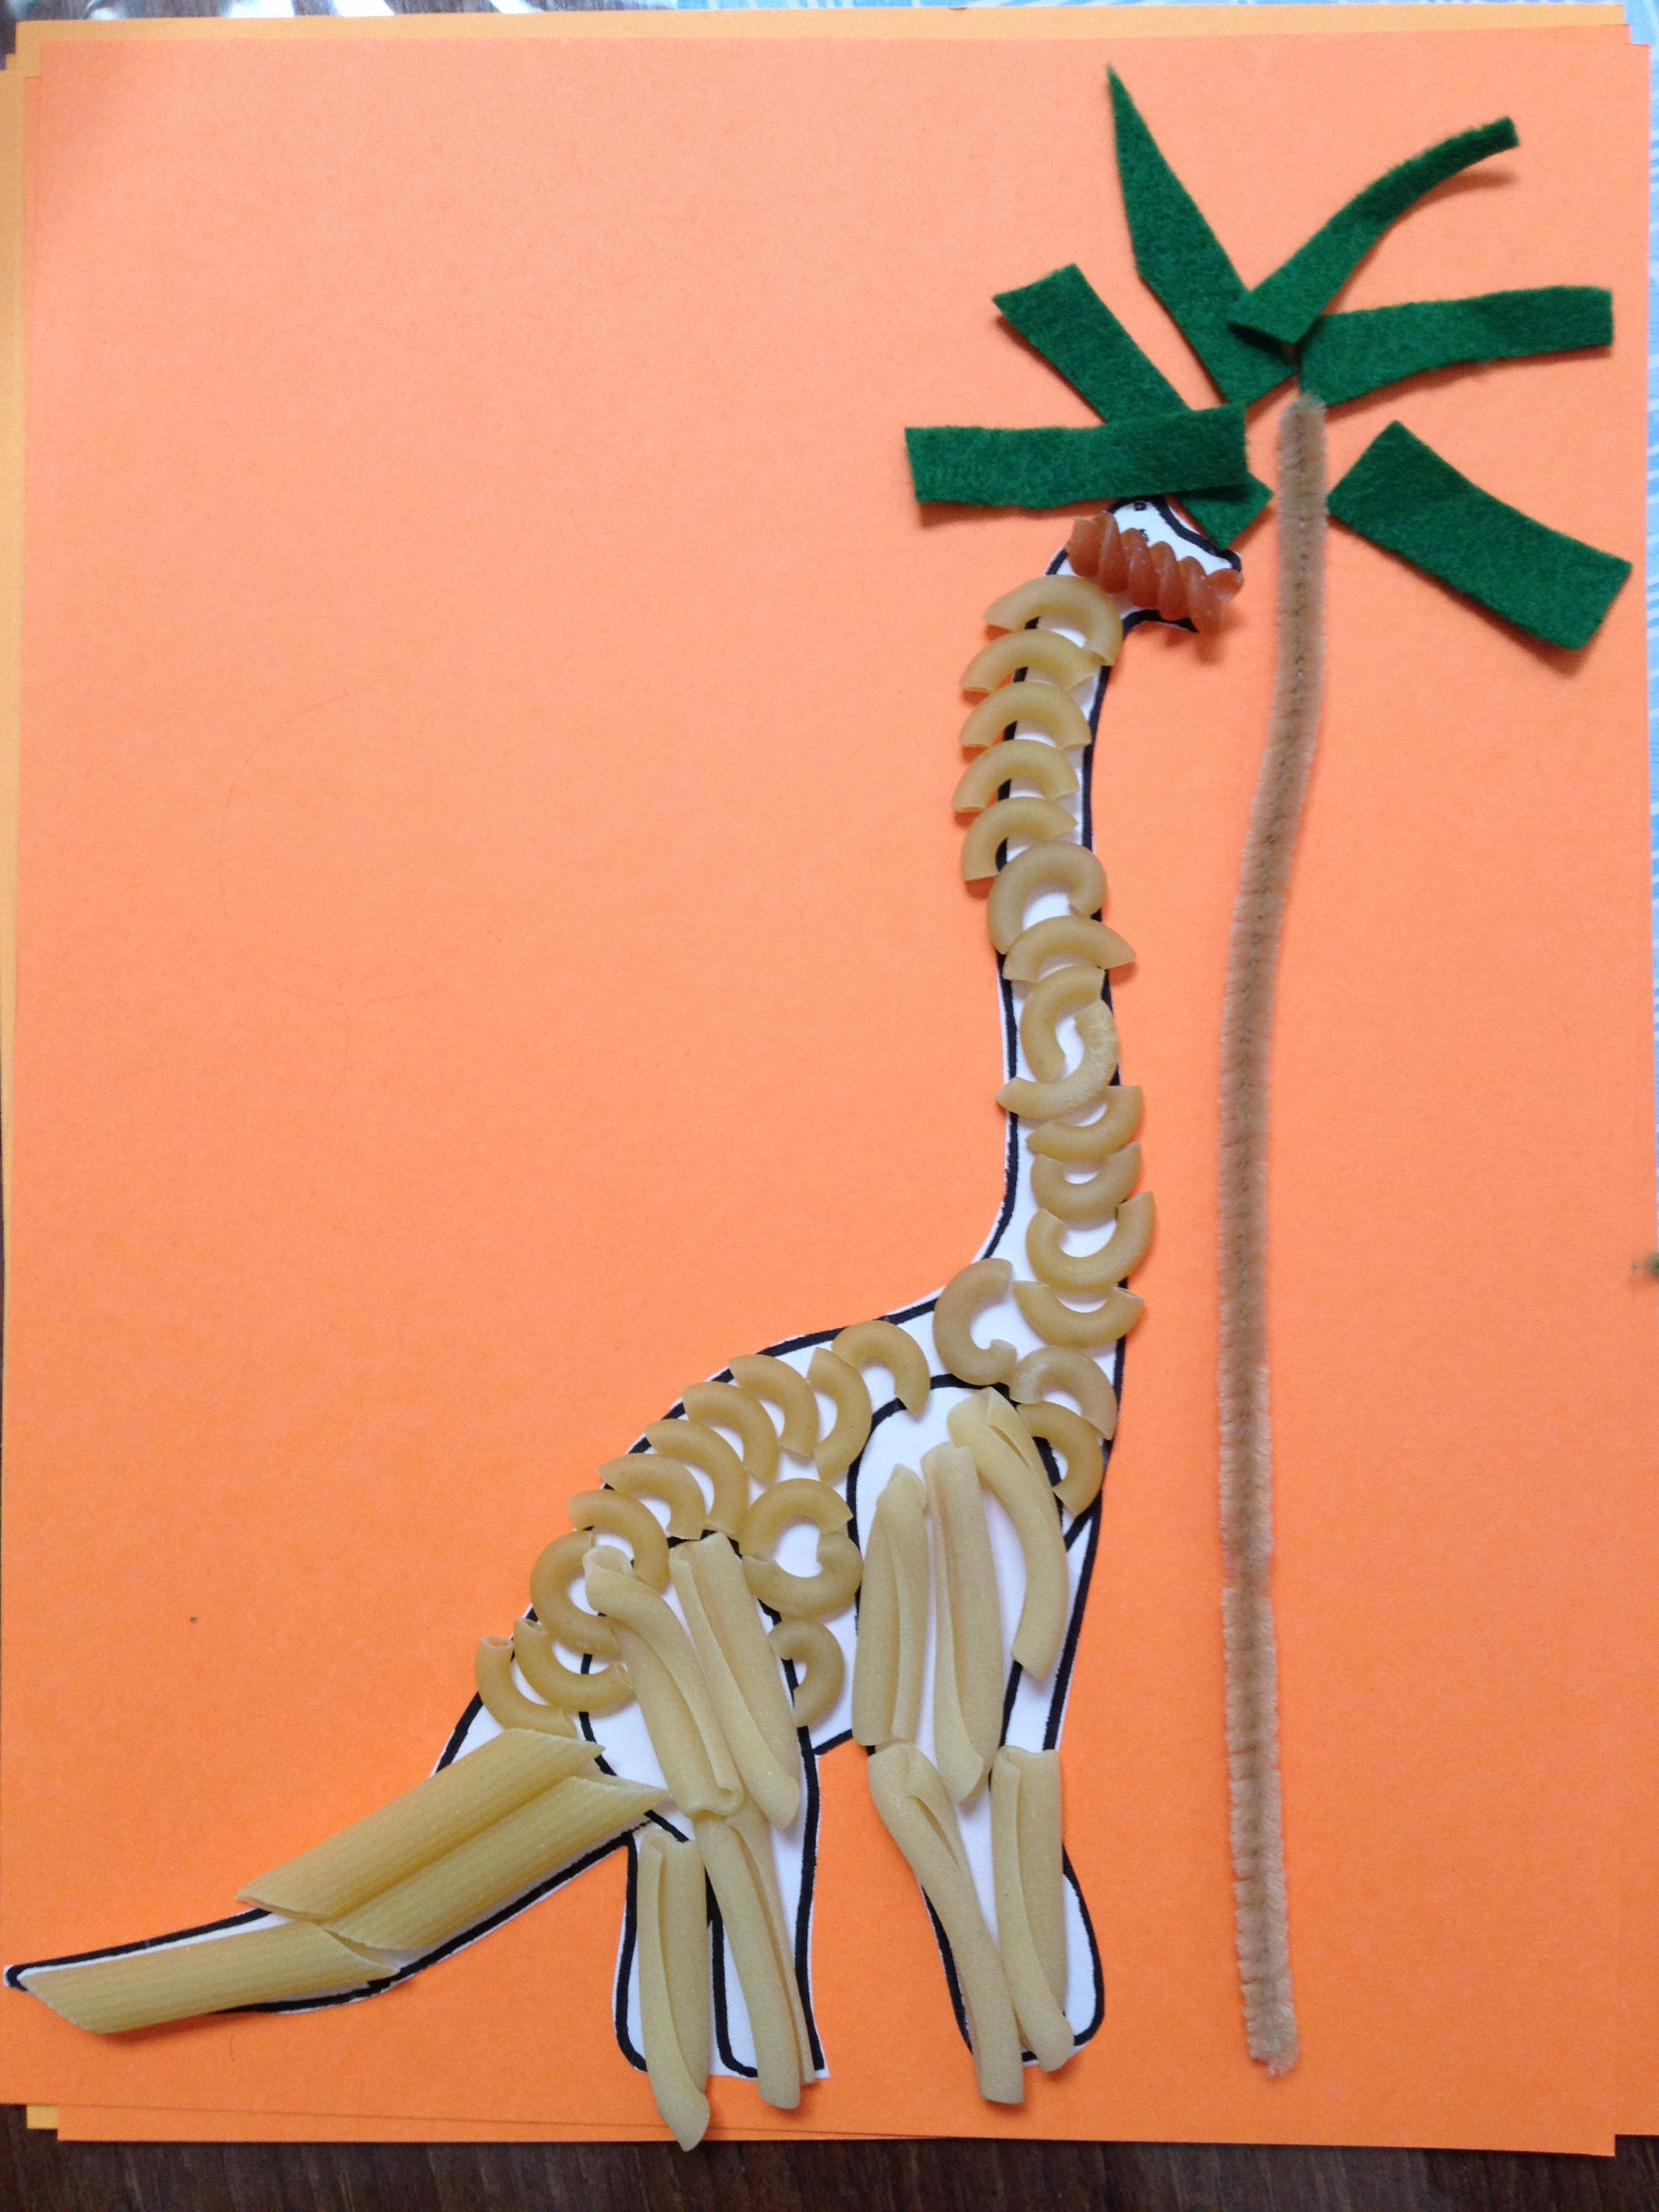 10 Easiest Dinosaur Craft Ideas To Execute With Your